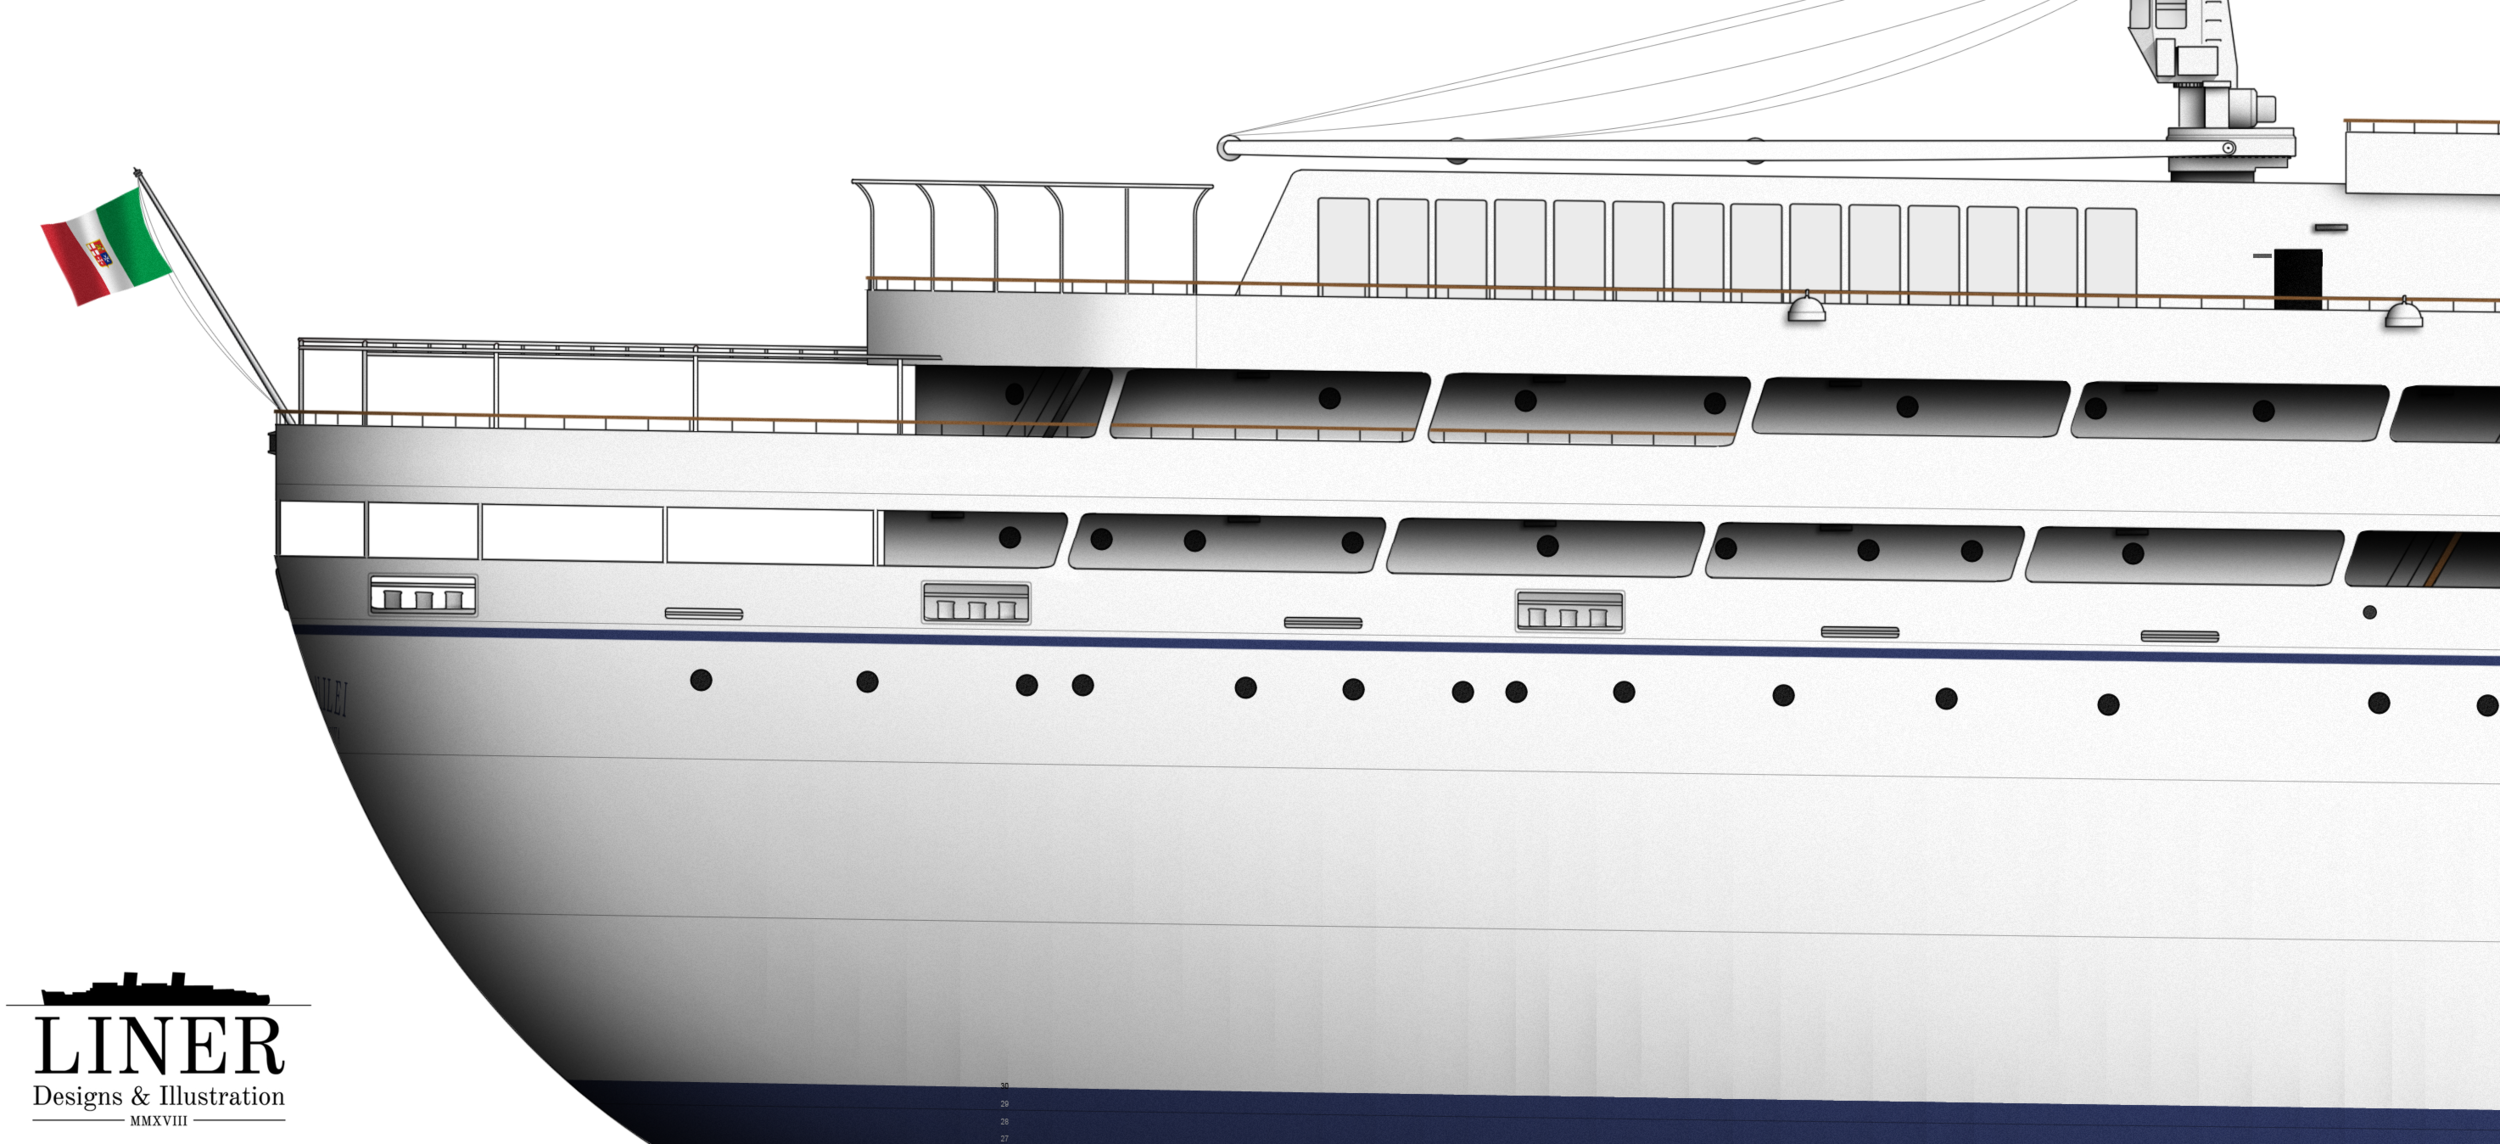 The stern 'gallery' - layers of promenade decks for passengers and crew to enjoy the sea air.